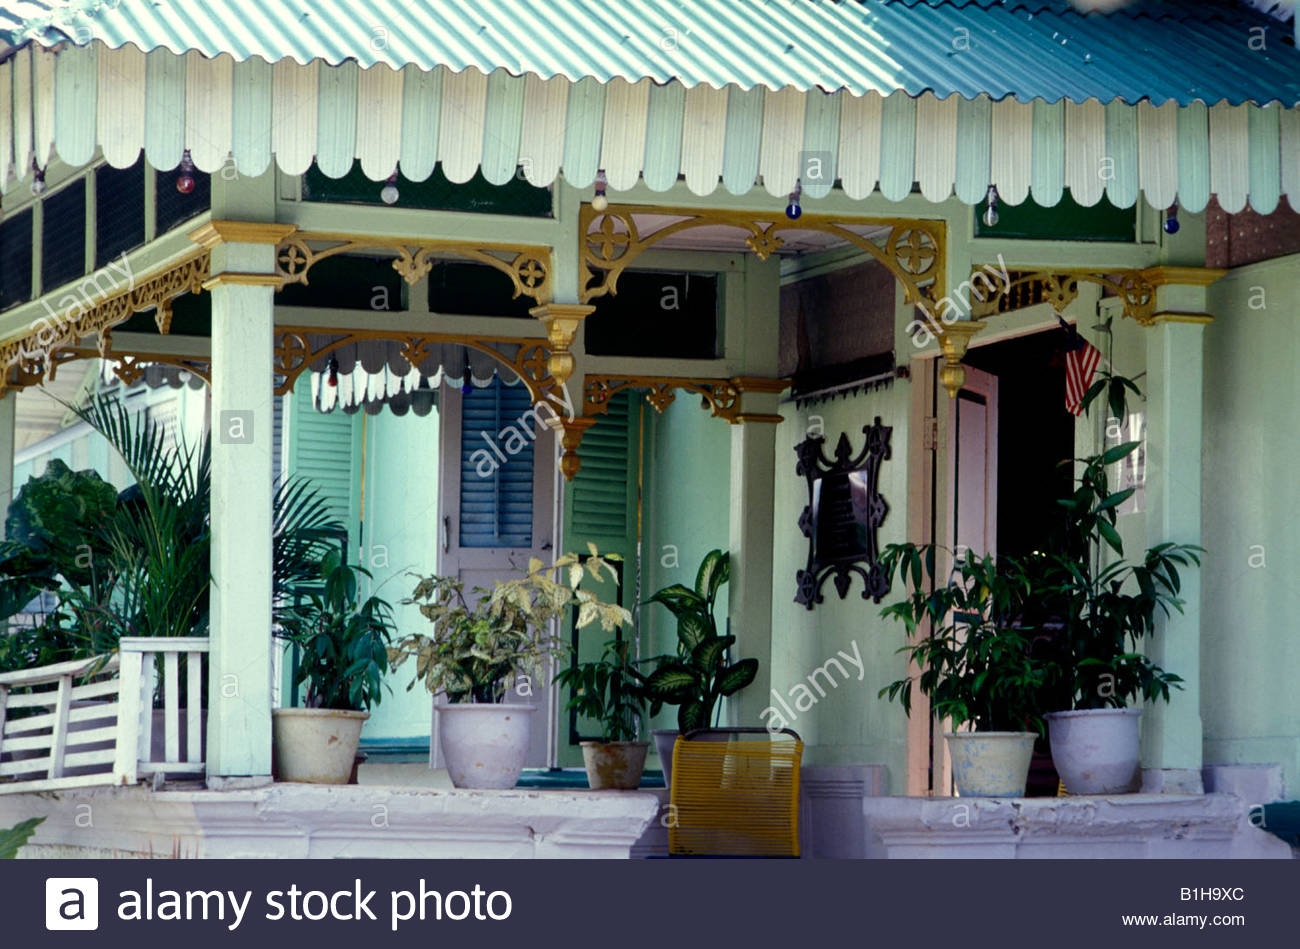 Villa Sentosa Melaka City, Villa Sentosa Stock Photos & Villa Sentosa Stock Images - Alamy